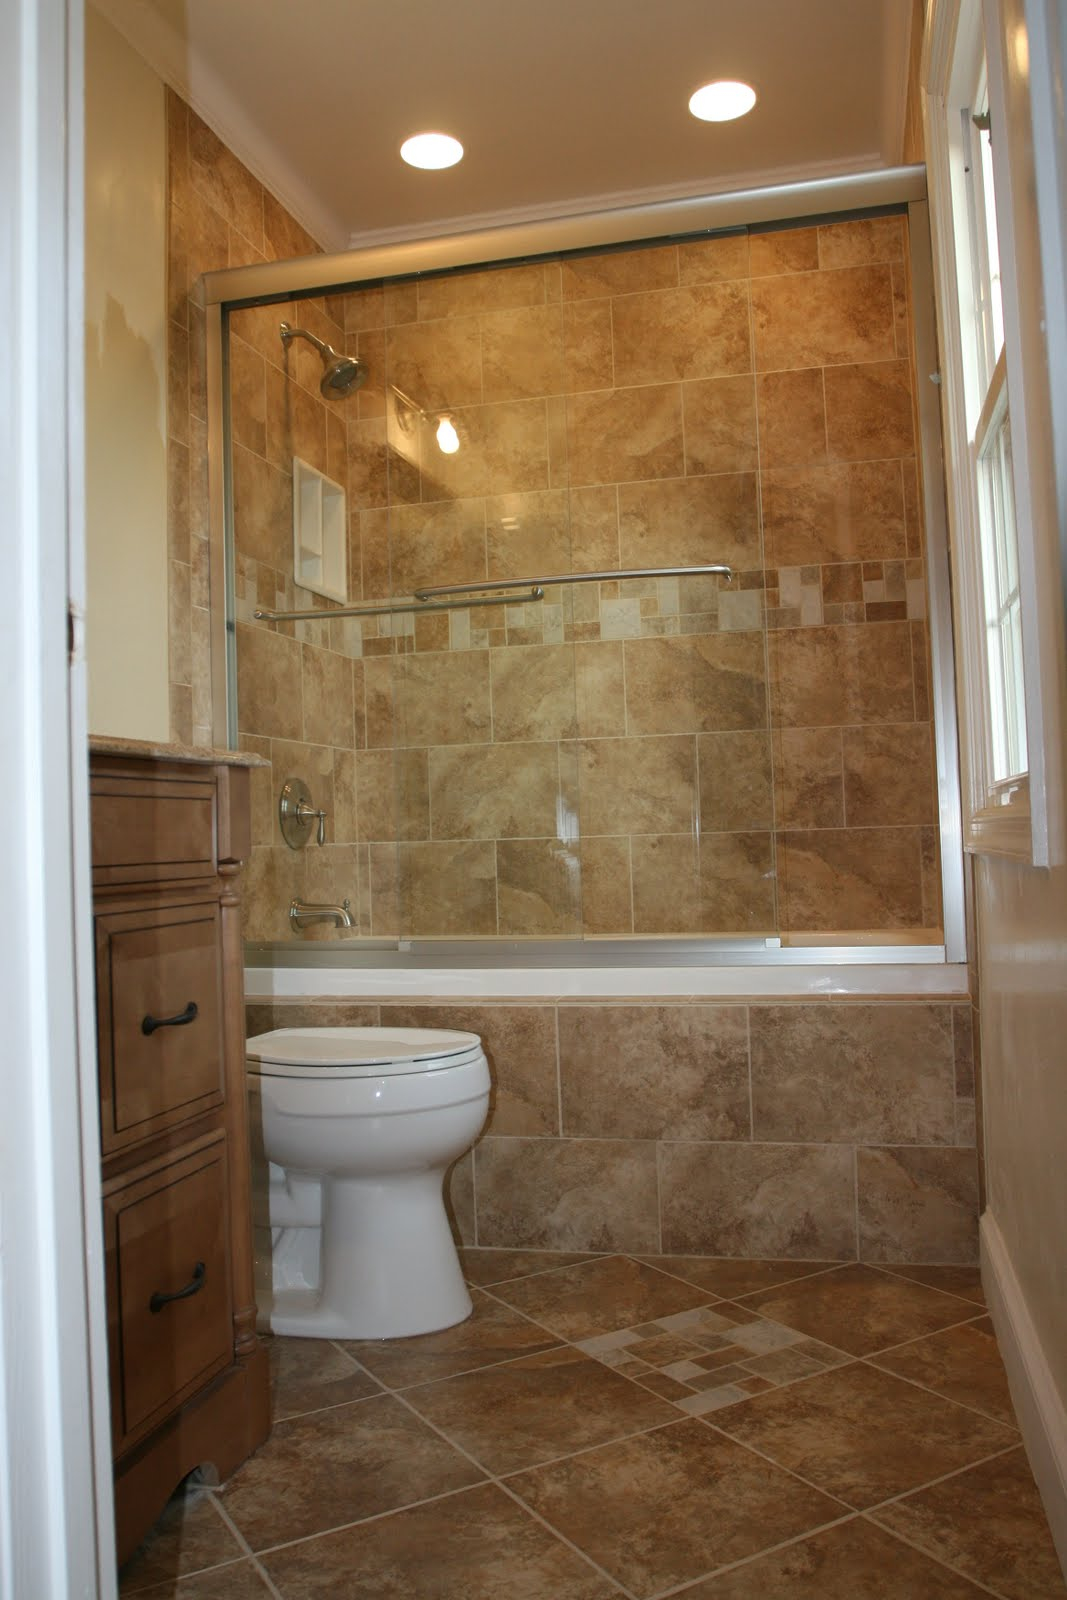 Bathroom remodeling design ideas tile shower niches for Design my bathroom remodel